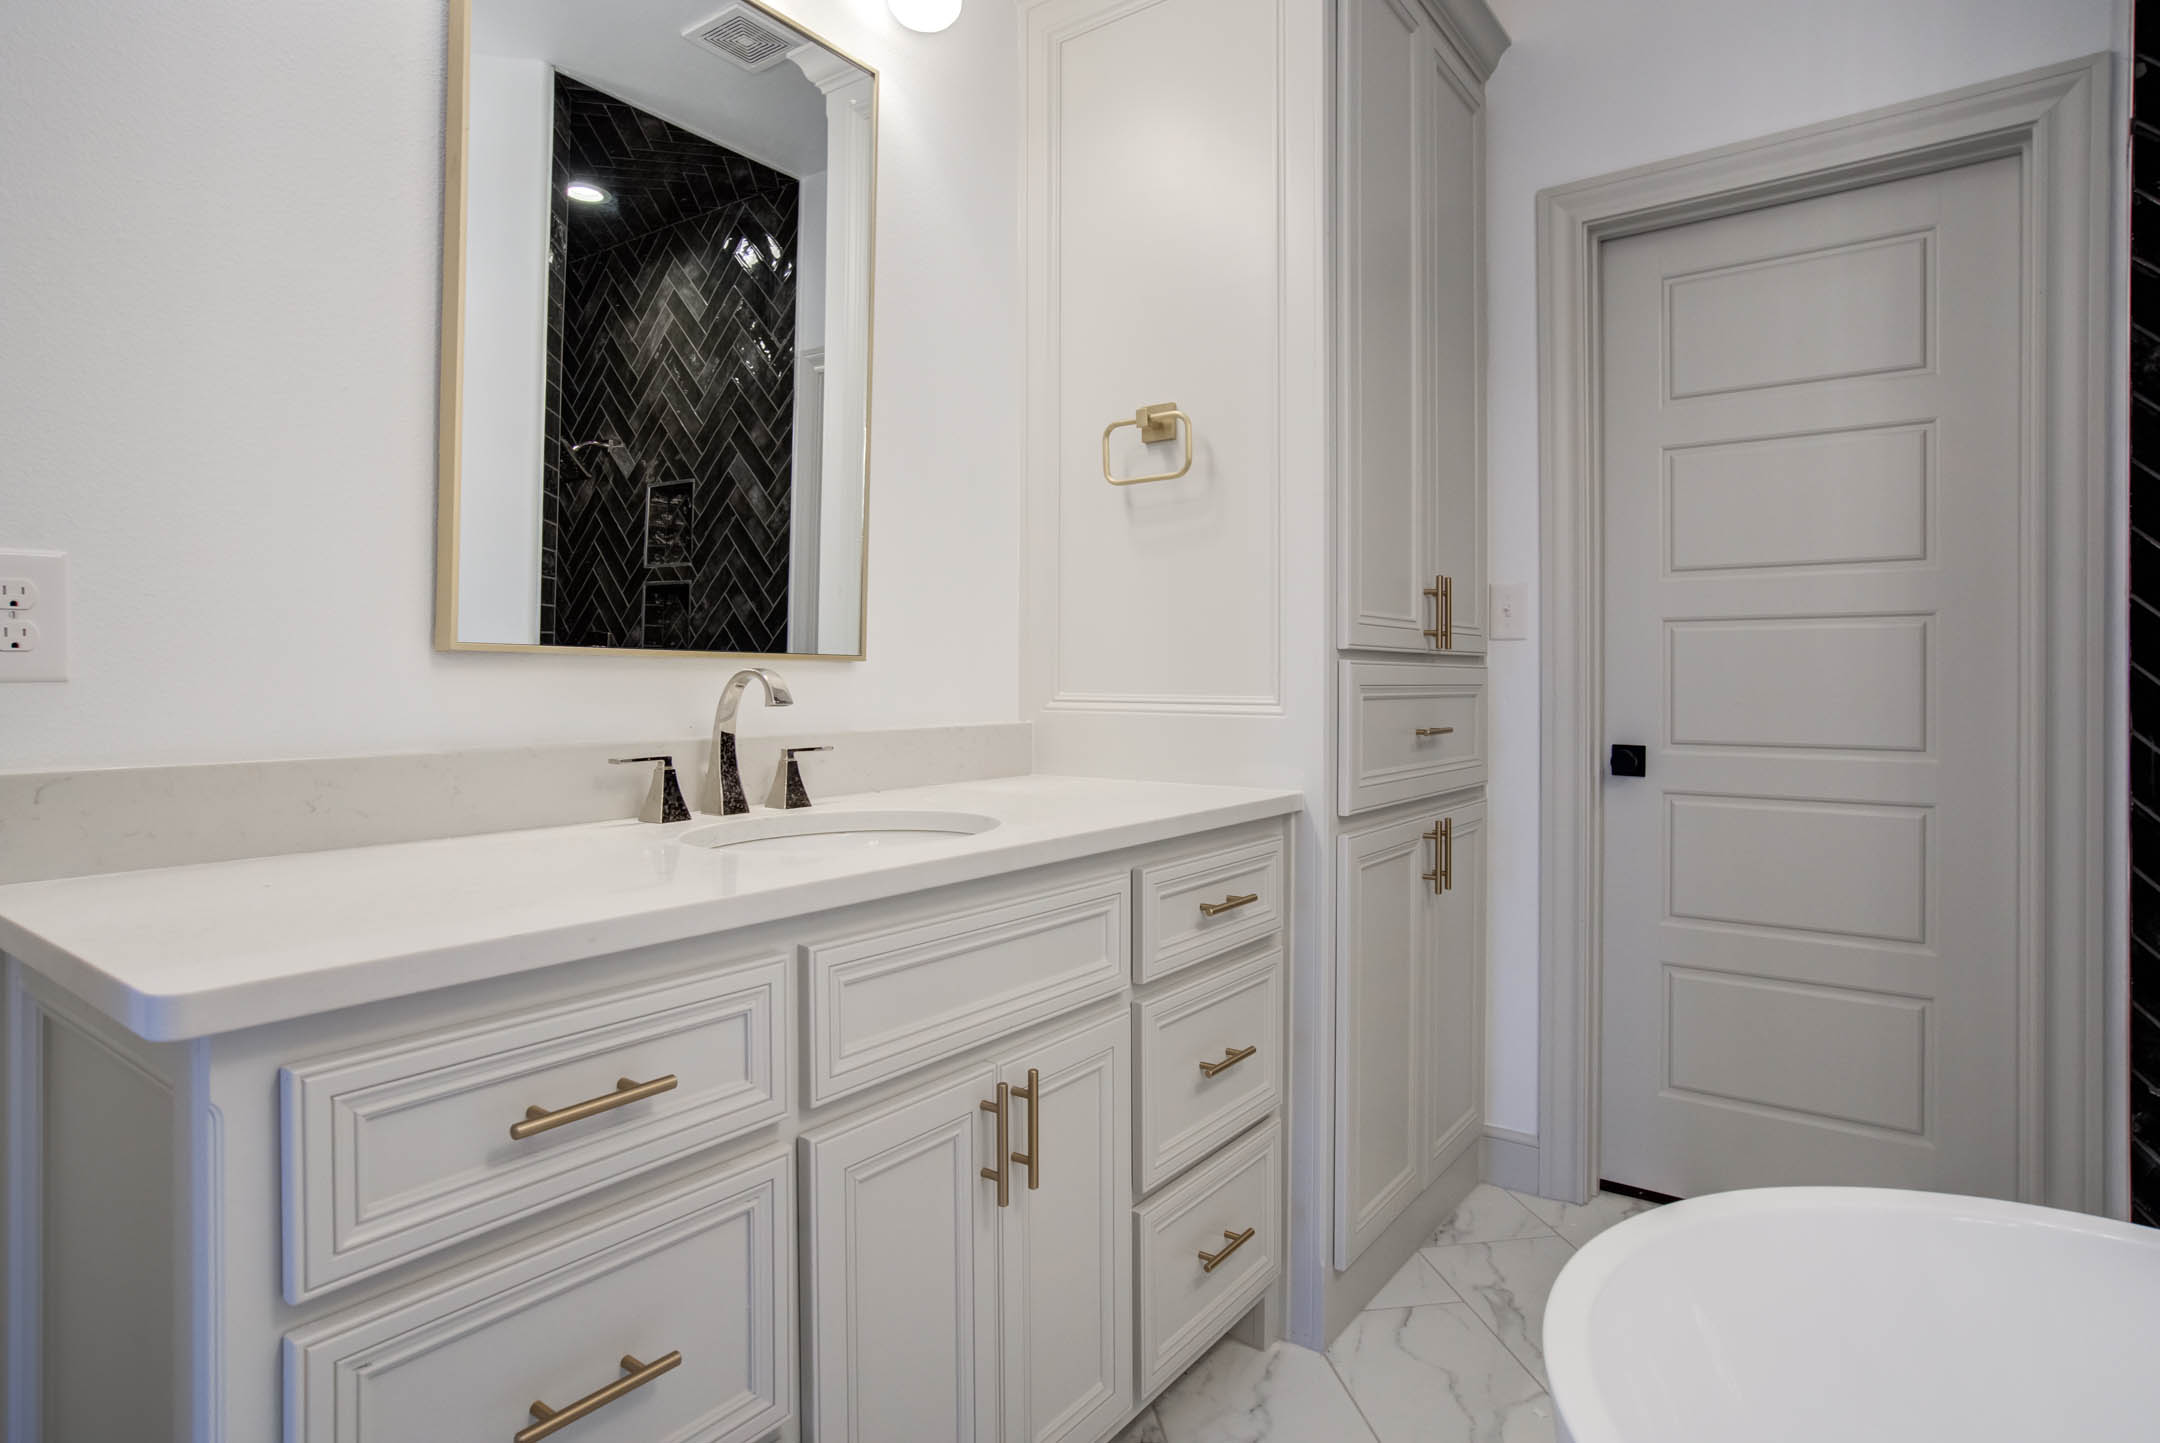 Spacious vanities in master bath of new home for sale near Lubbock.